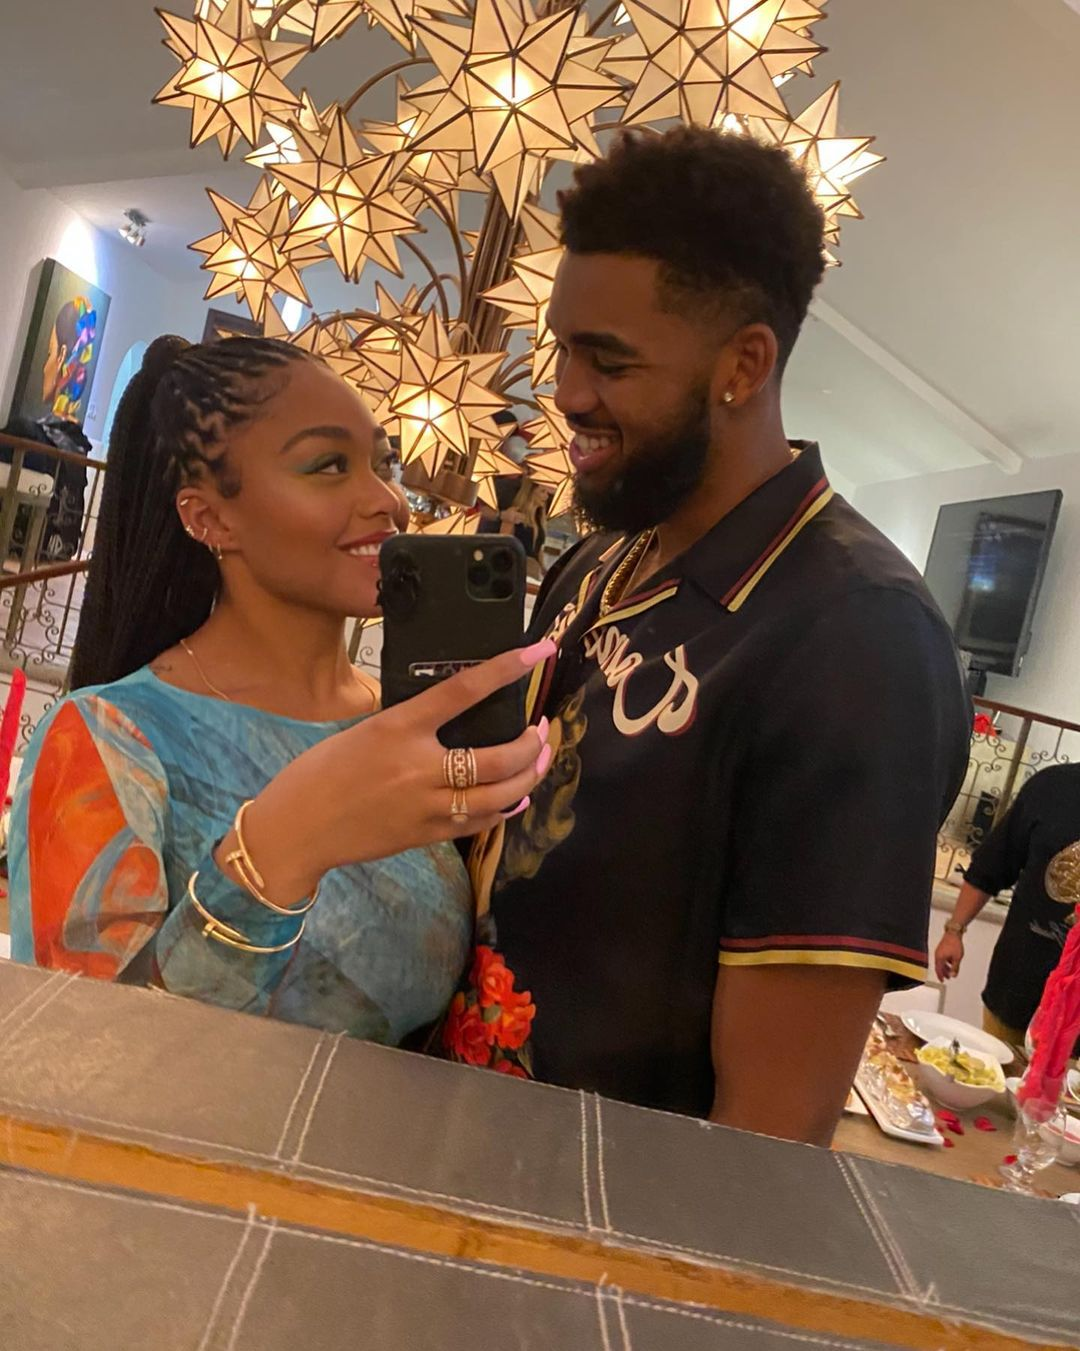 jordyn-woods-video-featuring-karl-anthony-towns-has-fans-in-awe